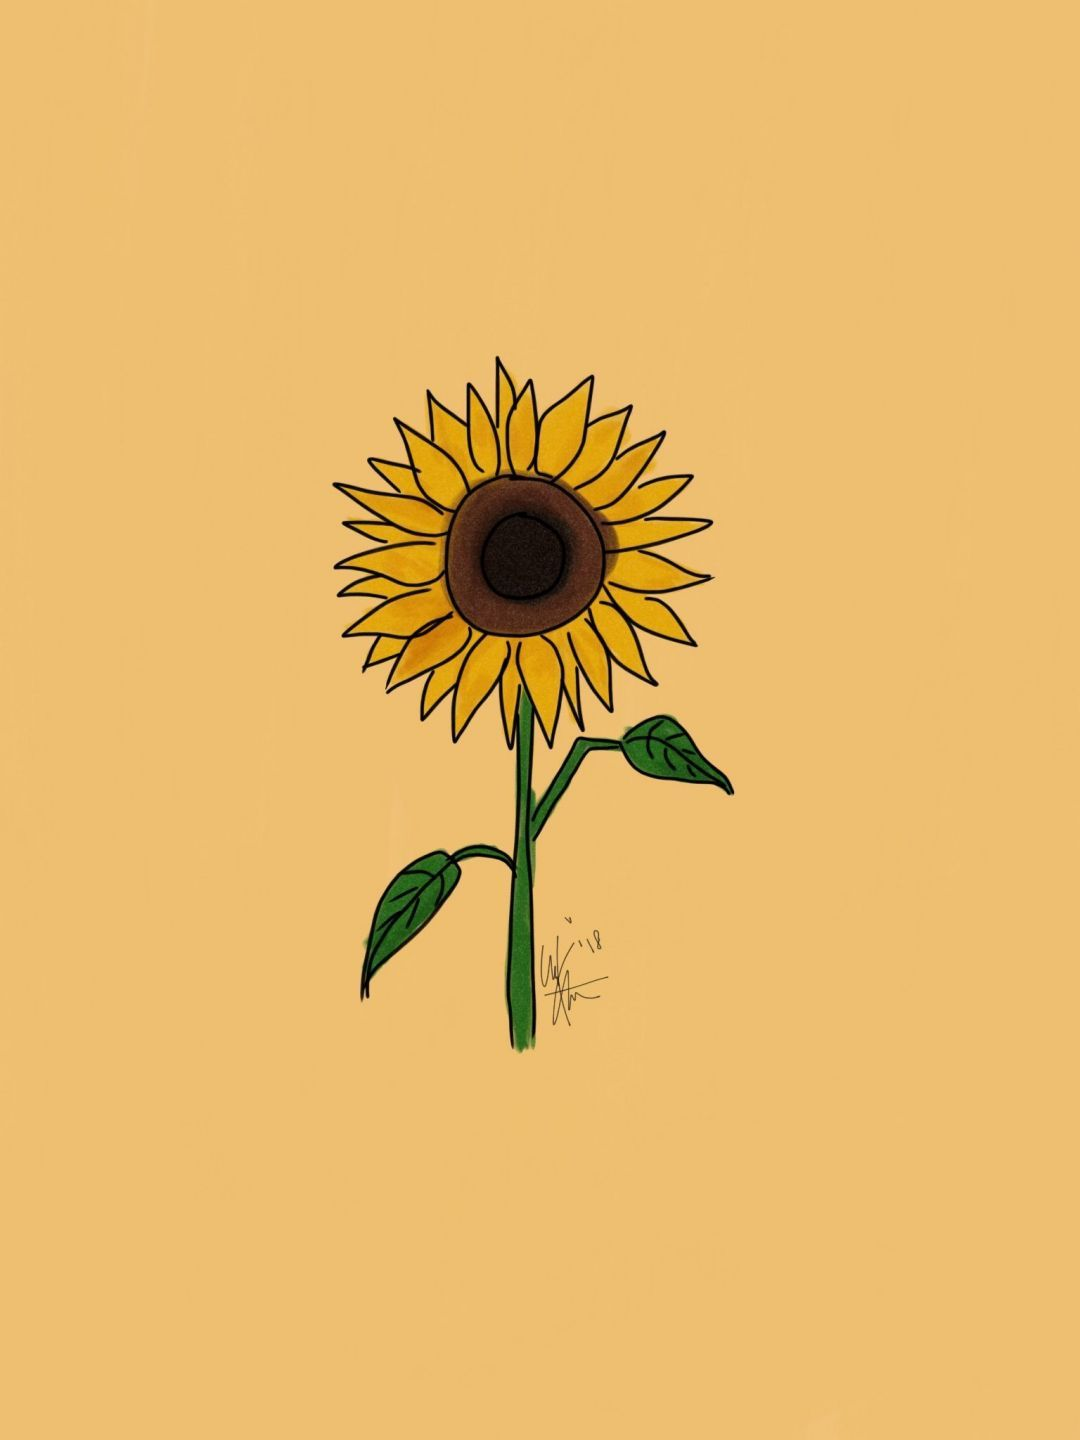 Yellow Sunflower Aesthetic Wallpapers Top Free Yellow Sunflower Aesthetic Backgrounds Wallpaperaccess